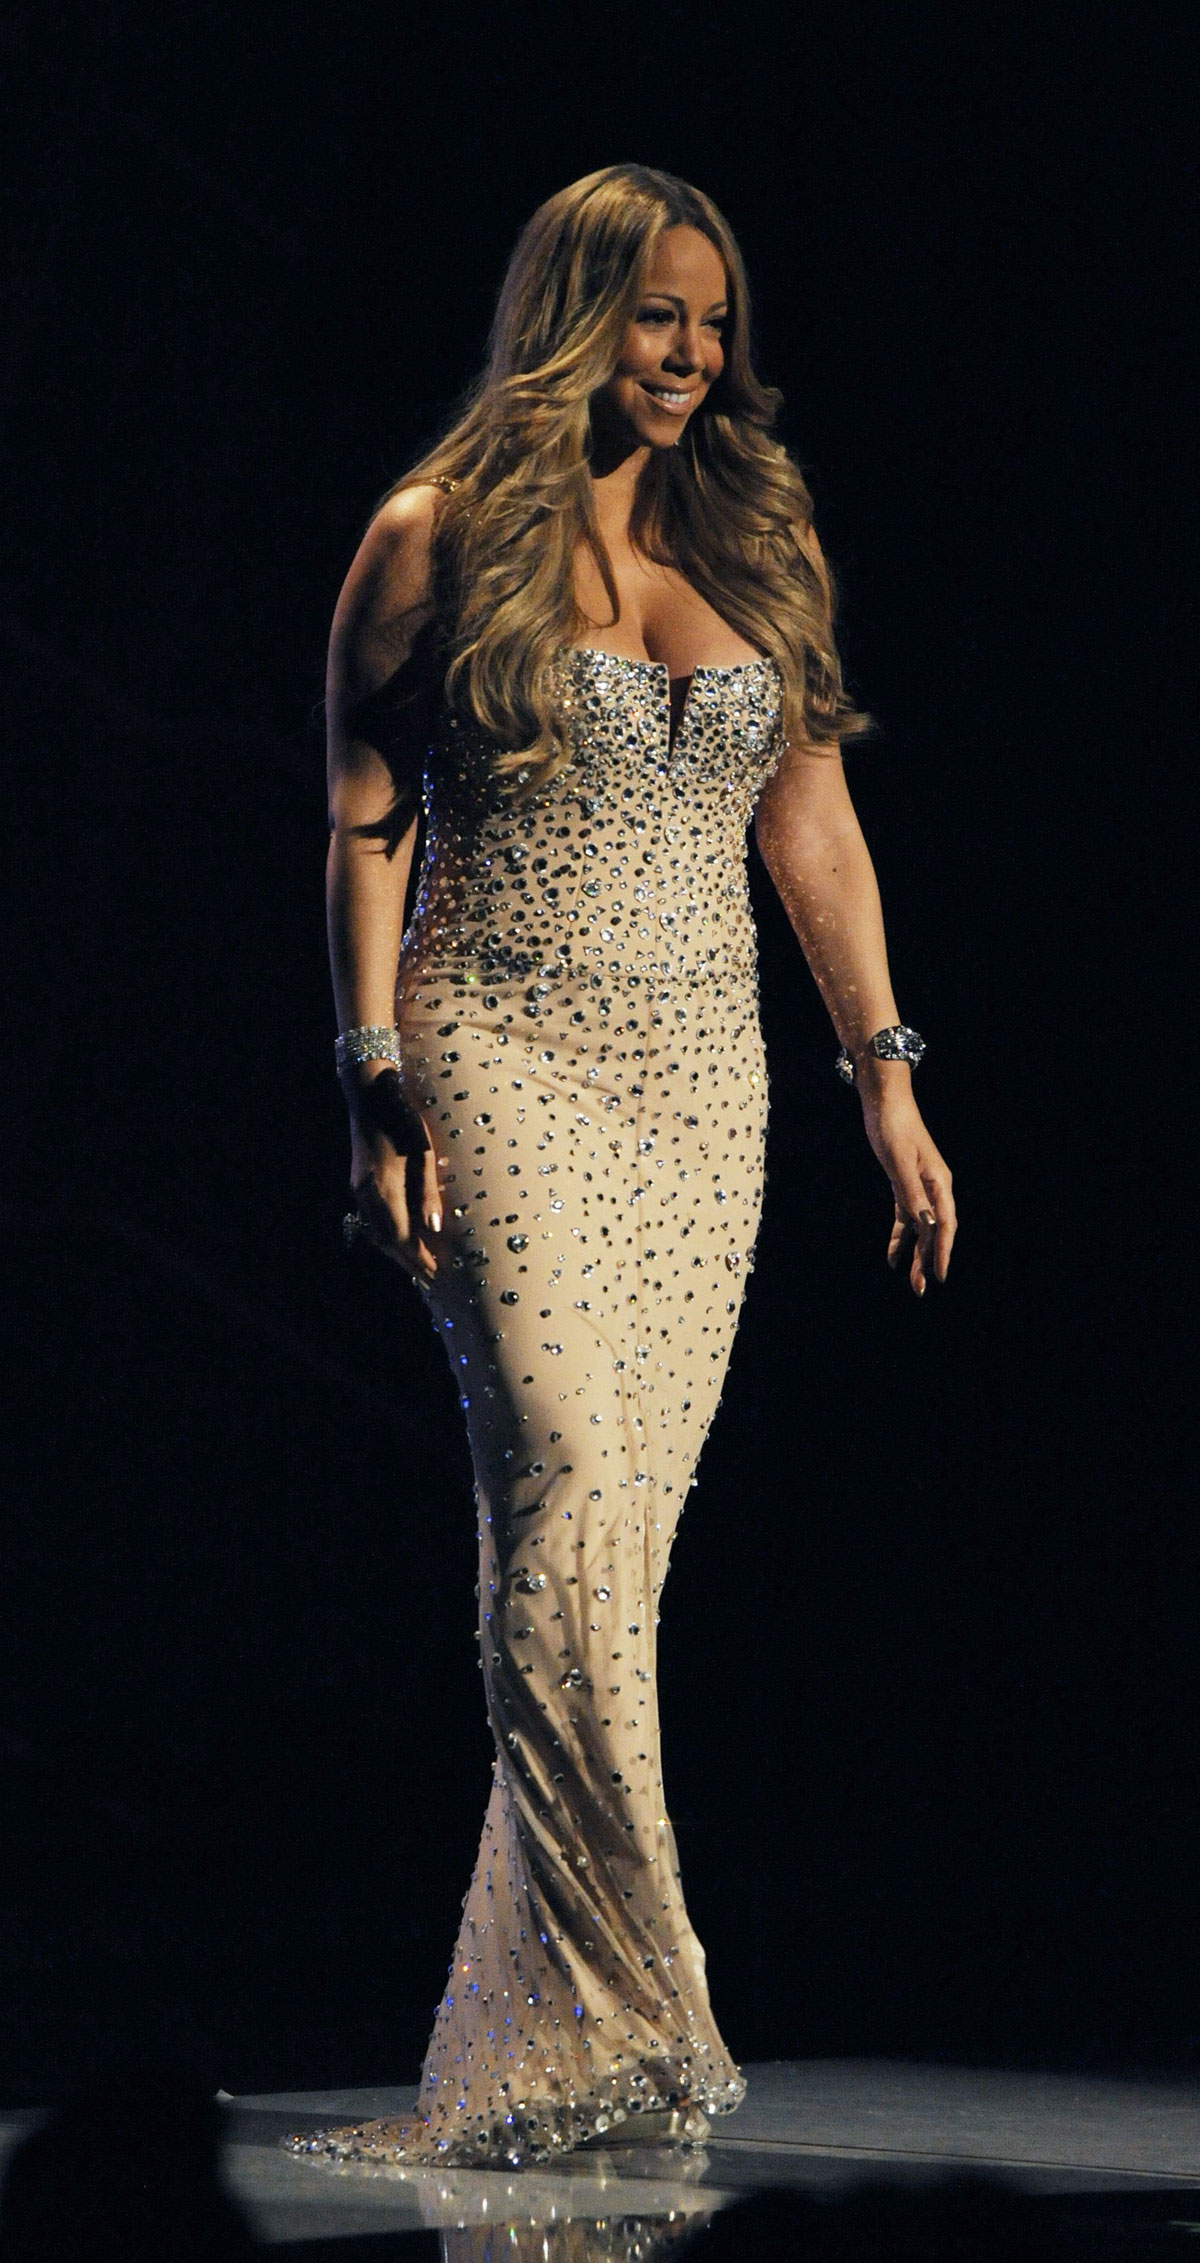 Mariah carey on bet awards minequest 1-3 2-4 betting system